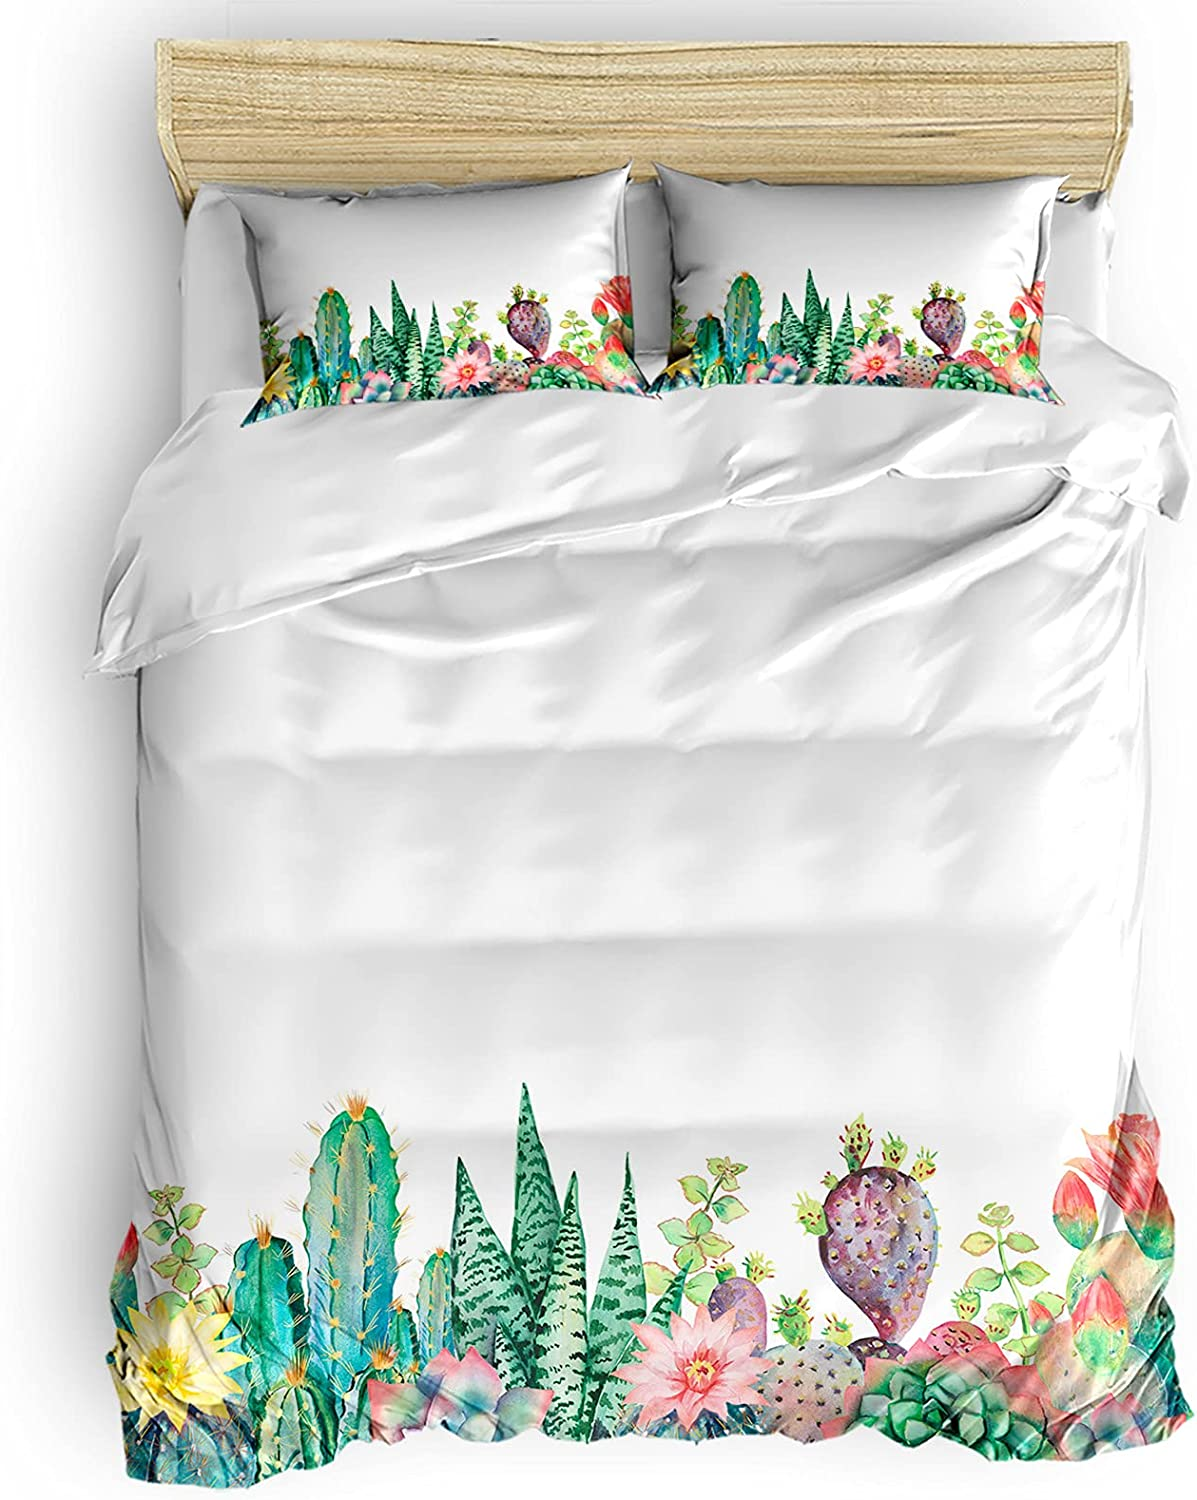 BABE Special price for a limited time MAPS Green Plants Duvet Recommendation Covers Size Queen Pieces Breathab 4